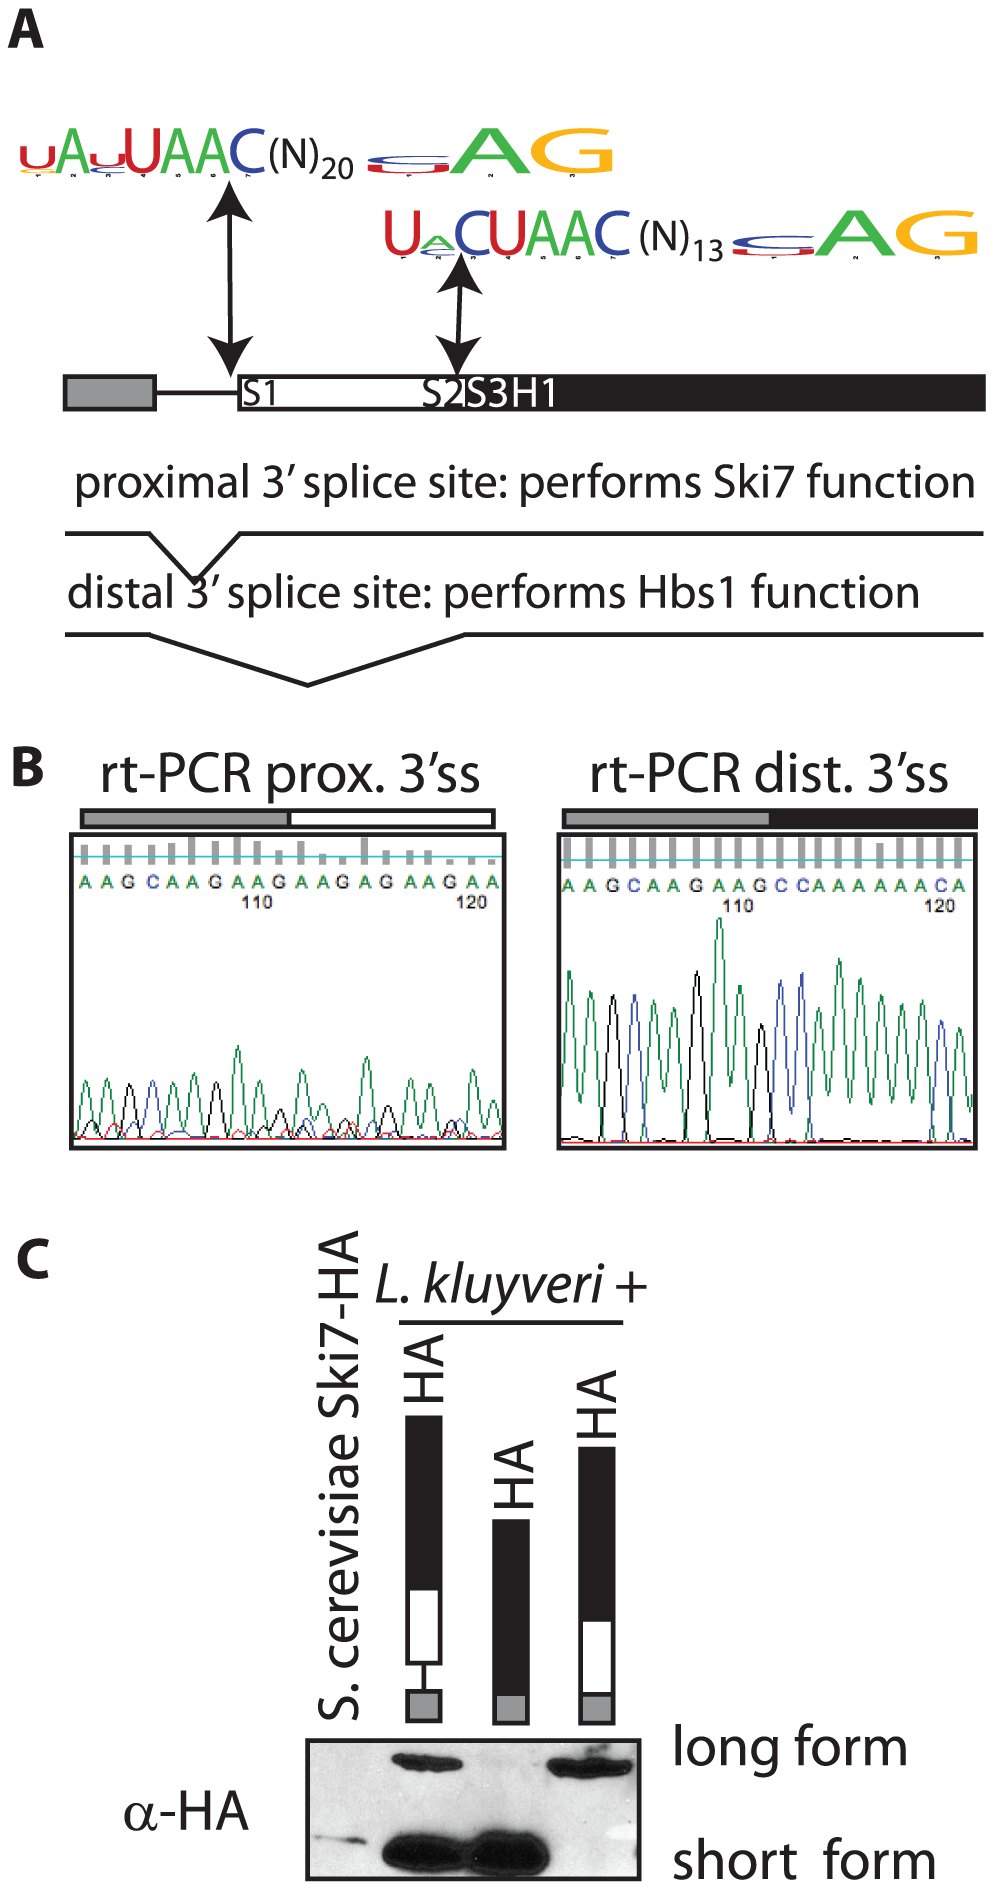 The <i>SKI7/HBS1</i> gene in pre-whole-genome duplication <i>Saccharomycetaceae</i> encodes two different proteins.